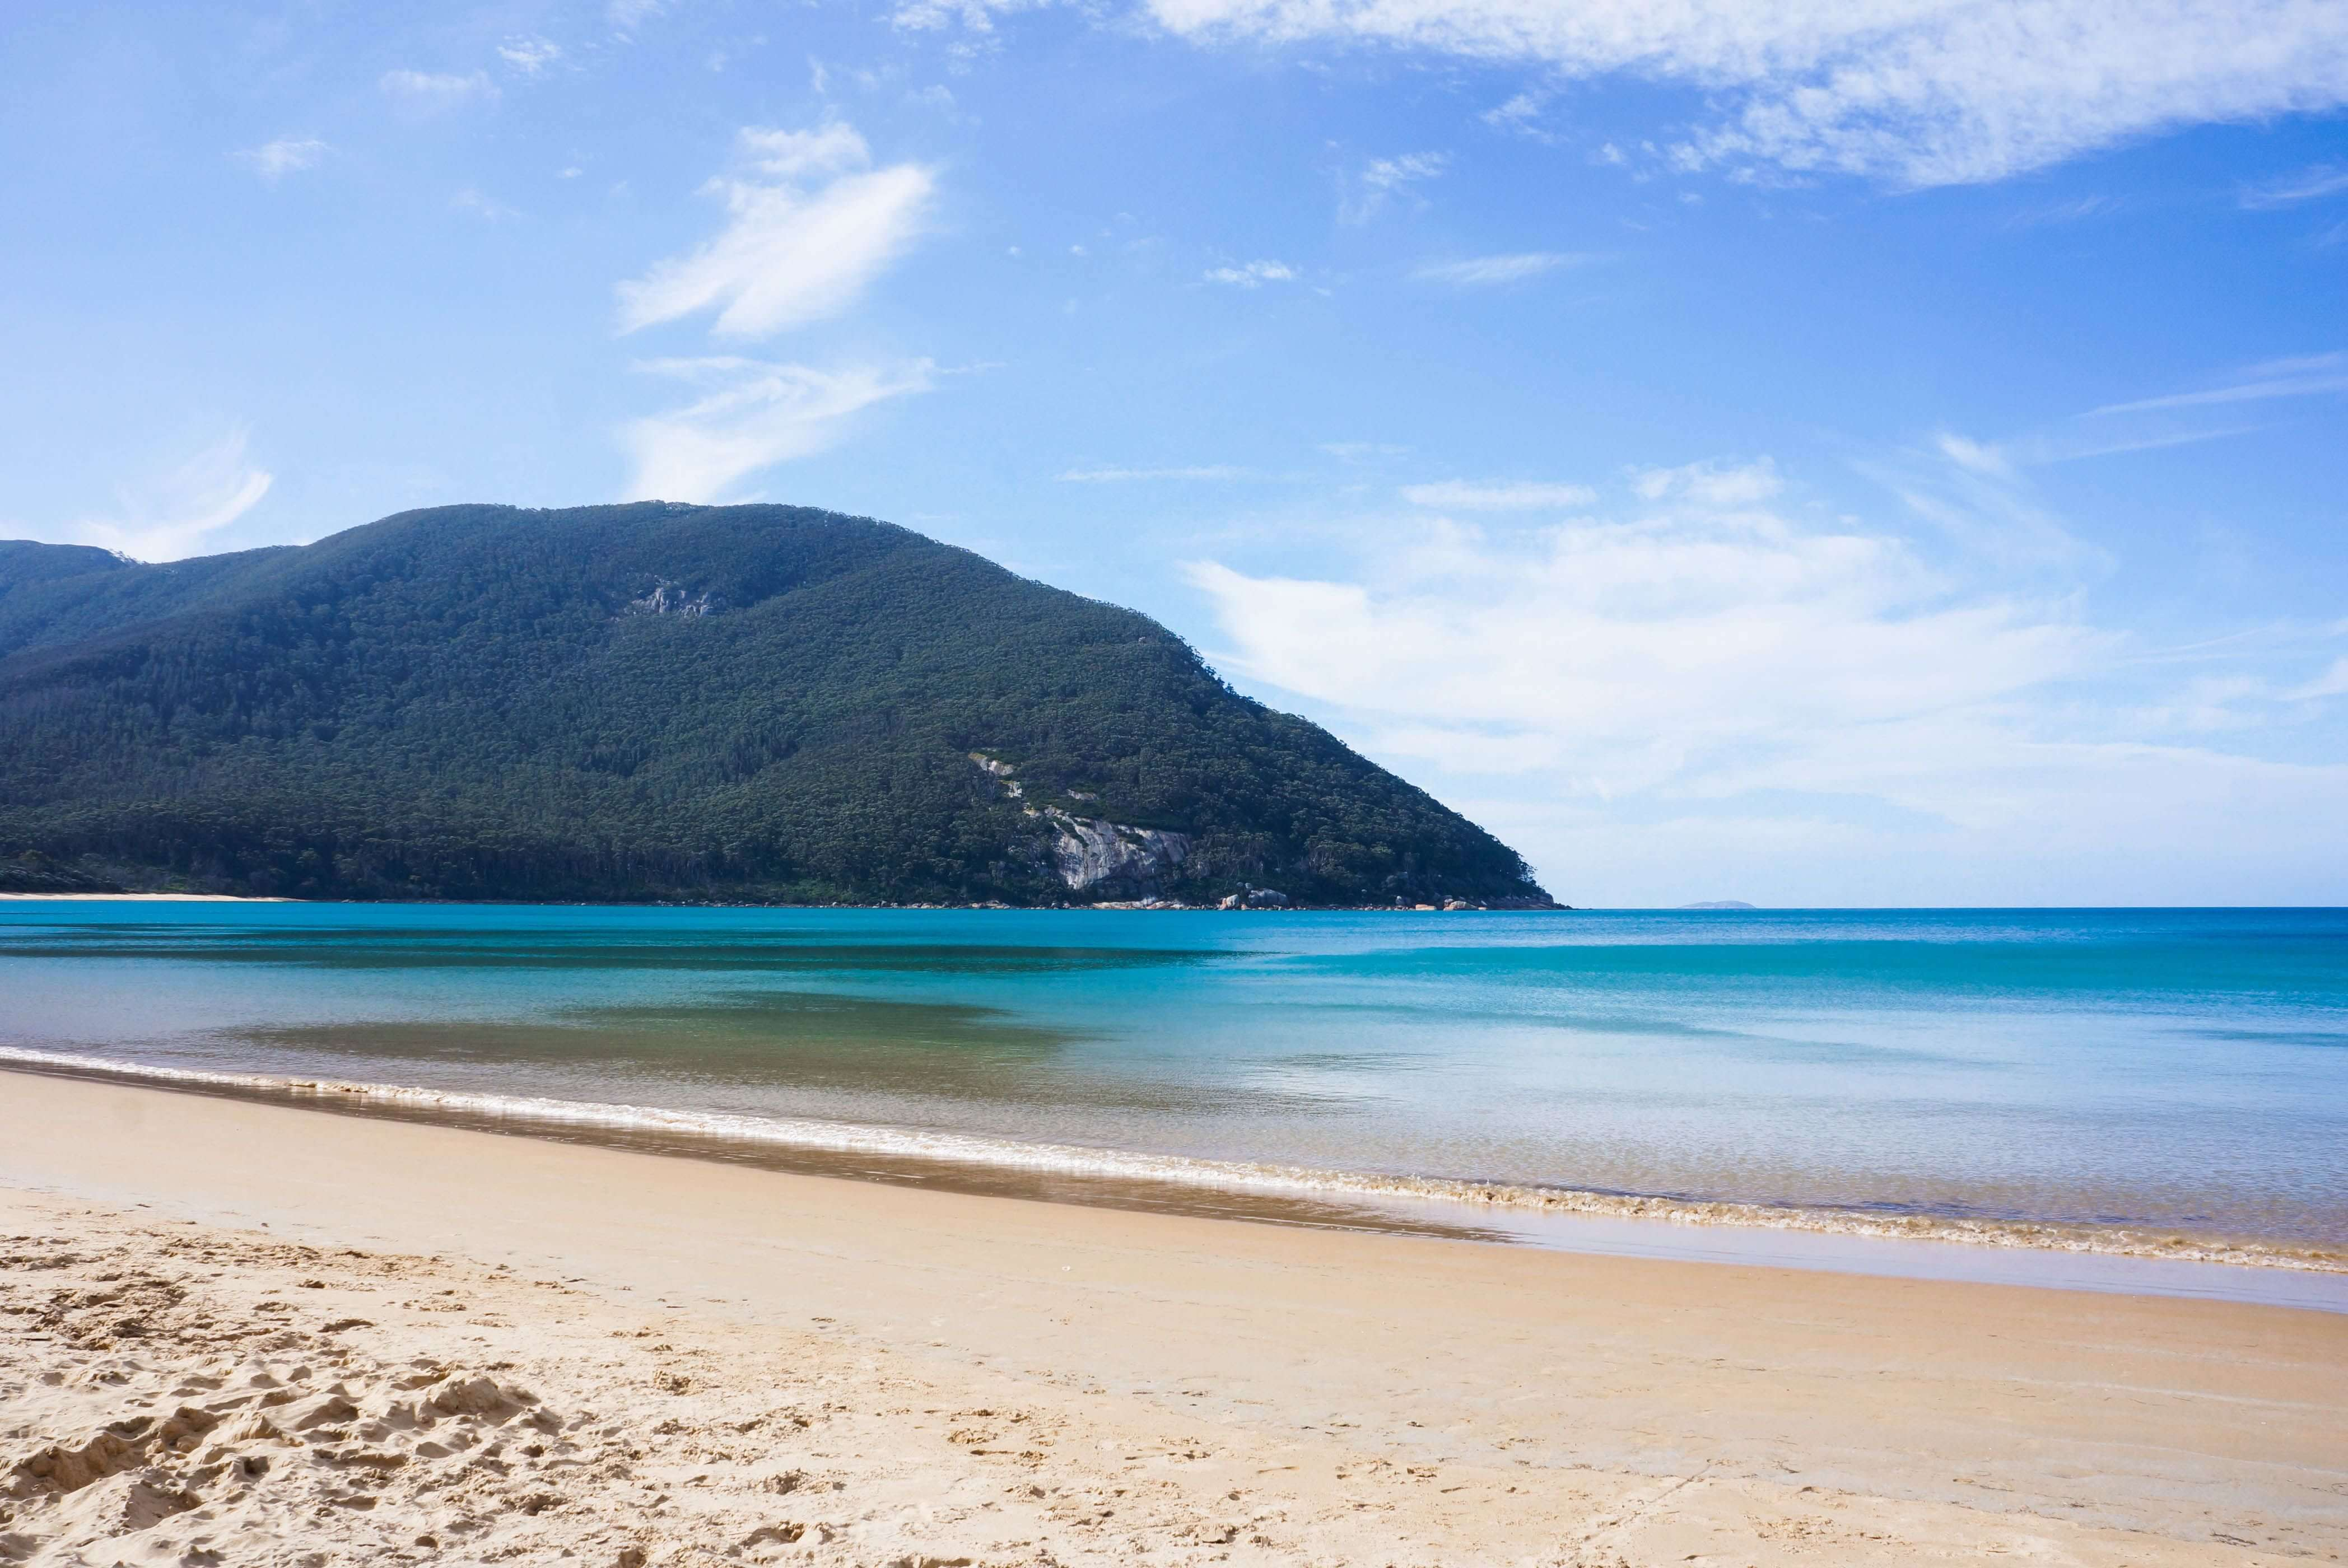 sealers cove, sealers cove hike, sealers cove wilsons promontory, sealers cove campground, sealers cover history